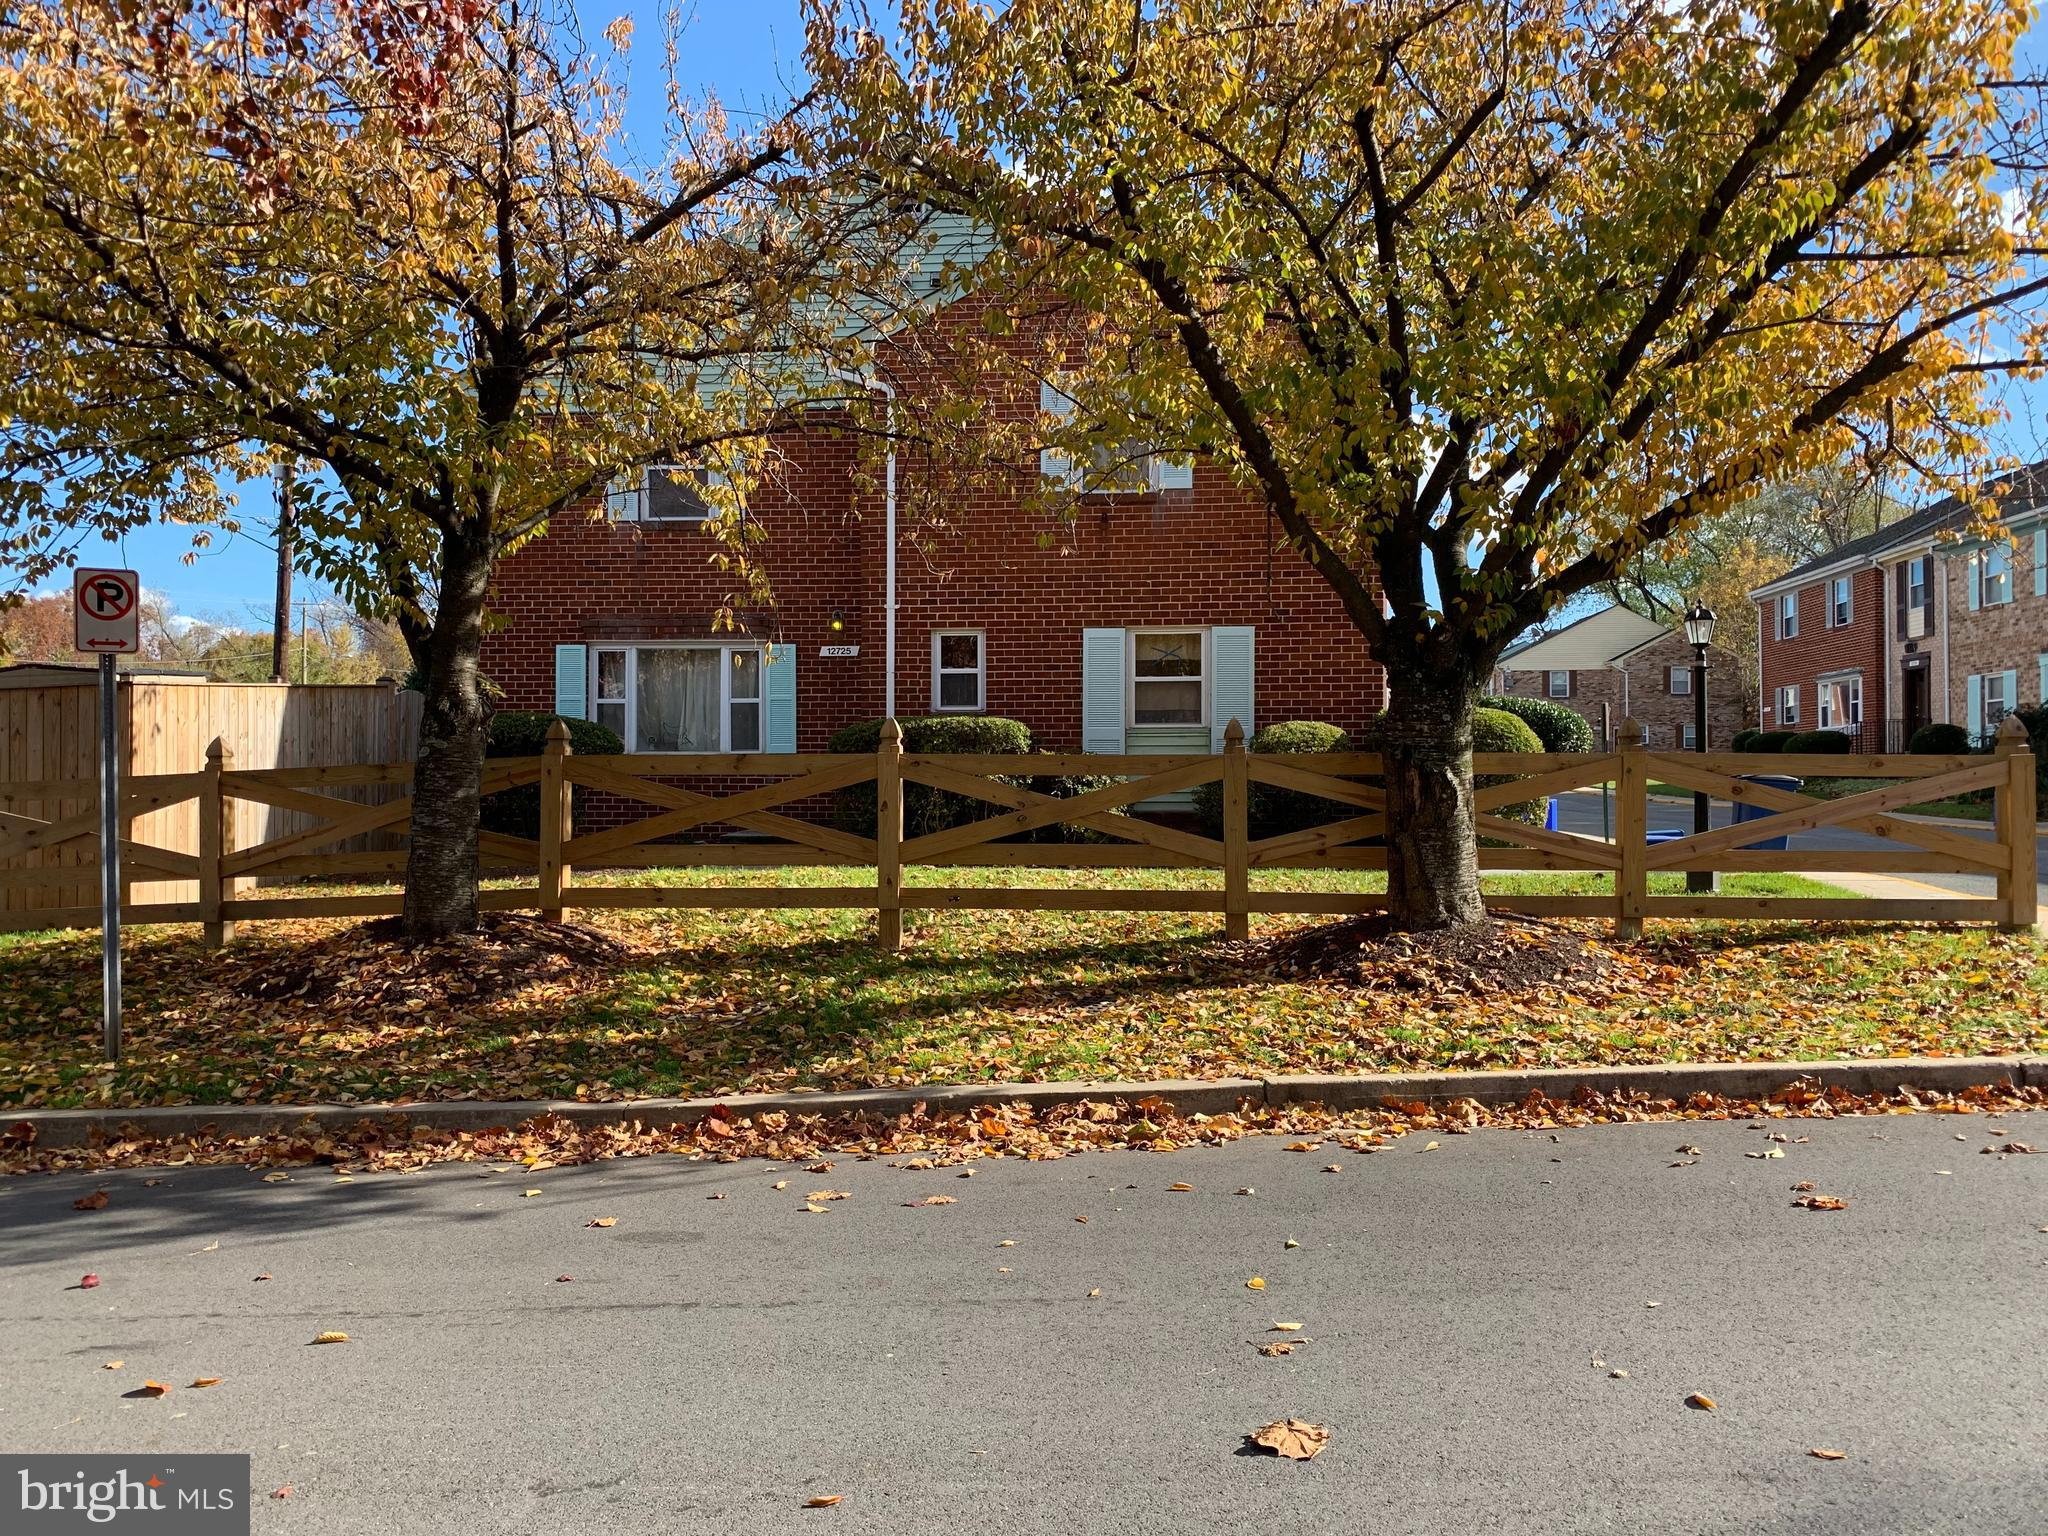 Sellers are offering $5,000 in closing concessions for contract ratified by January 6th!   There is also  HOLIDAY BONUS of TWO FREE MONTHS of condo fees for a contract ratified by January 6th.   Ask your agent for more details!   Nervous buyers lost out but it's YOUR GAIN!  Looking for a move-in ready end of unit condo townhouse at an affordable price?  This is it!    Three bedrooms, 2 full baths, 2 half baths, oak hardwood floors, new hot water heater and new HVAC!  Kitchen boasts new microwave and dishwasher.   The home has plenty of room for storage!   The backyard is one of the biggest in the complex.  The finished basement makes it over 1,800 square feet of living space!  Three block walk to the Glenmont metro.  Close to Target and Costco!    The reasonable condo fee covers roofing, gutters, fencing, heat, trash, snow removal, exterior maintenance and lawn care in the front of your home.   Great value for your money -- don't miss out!